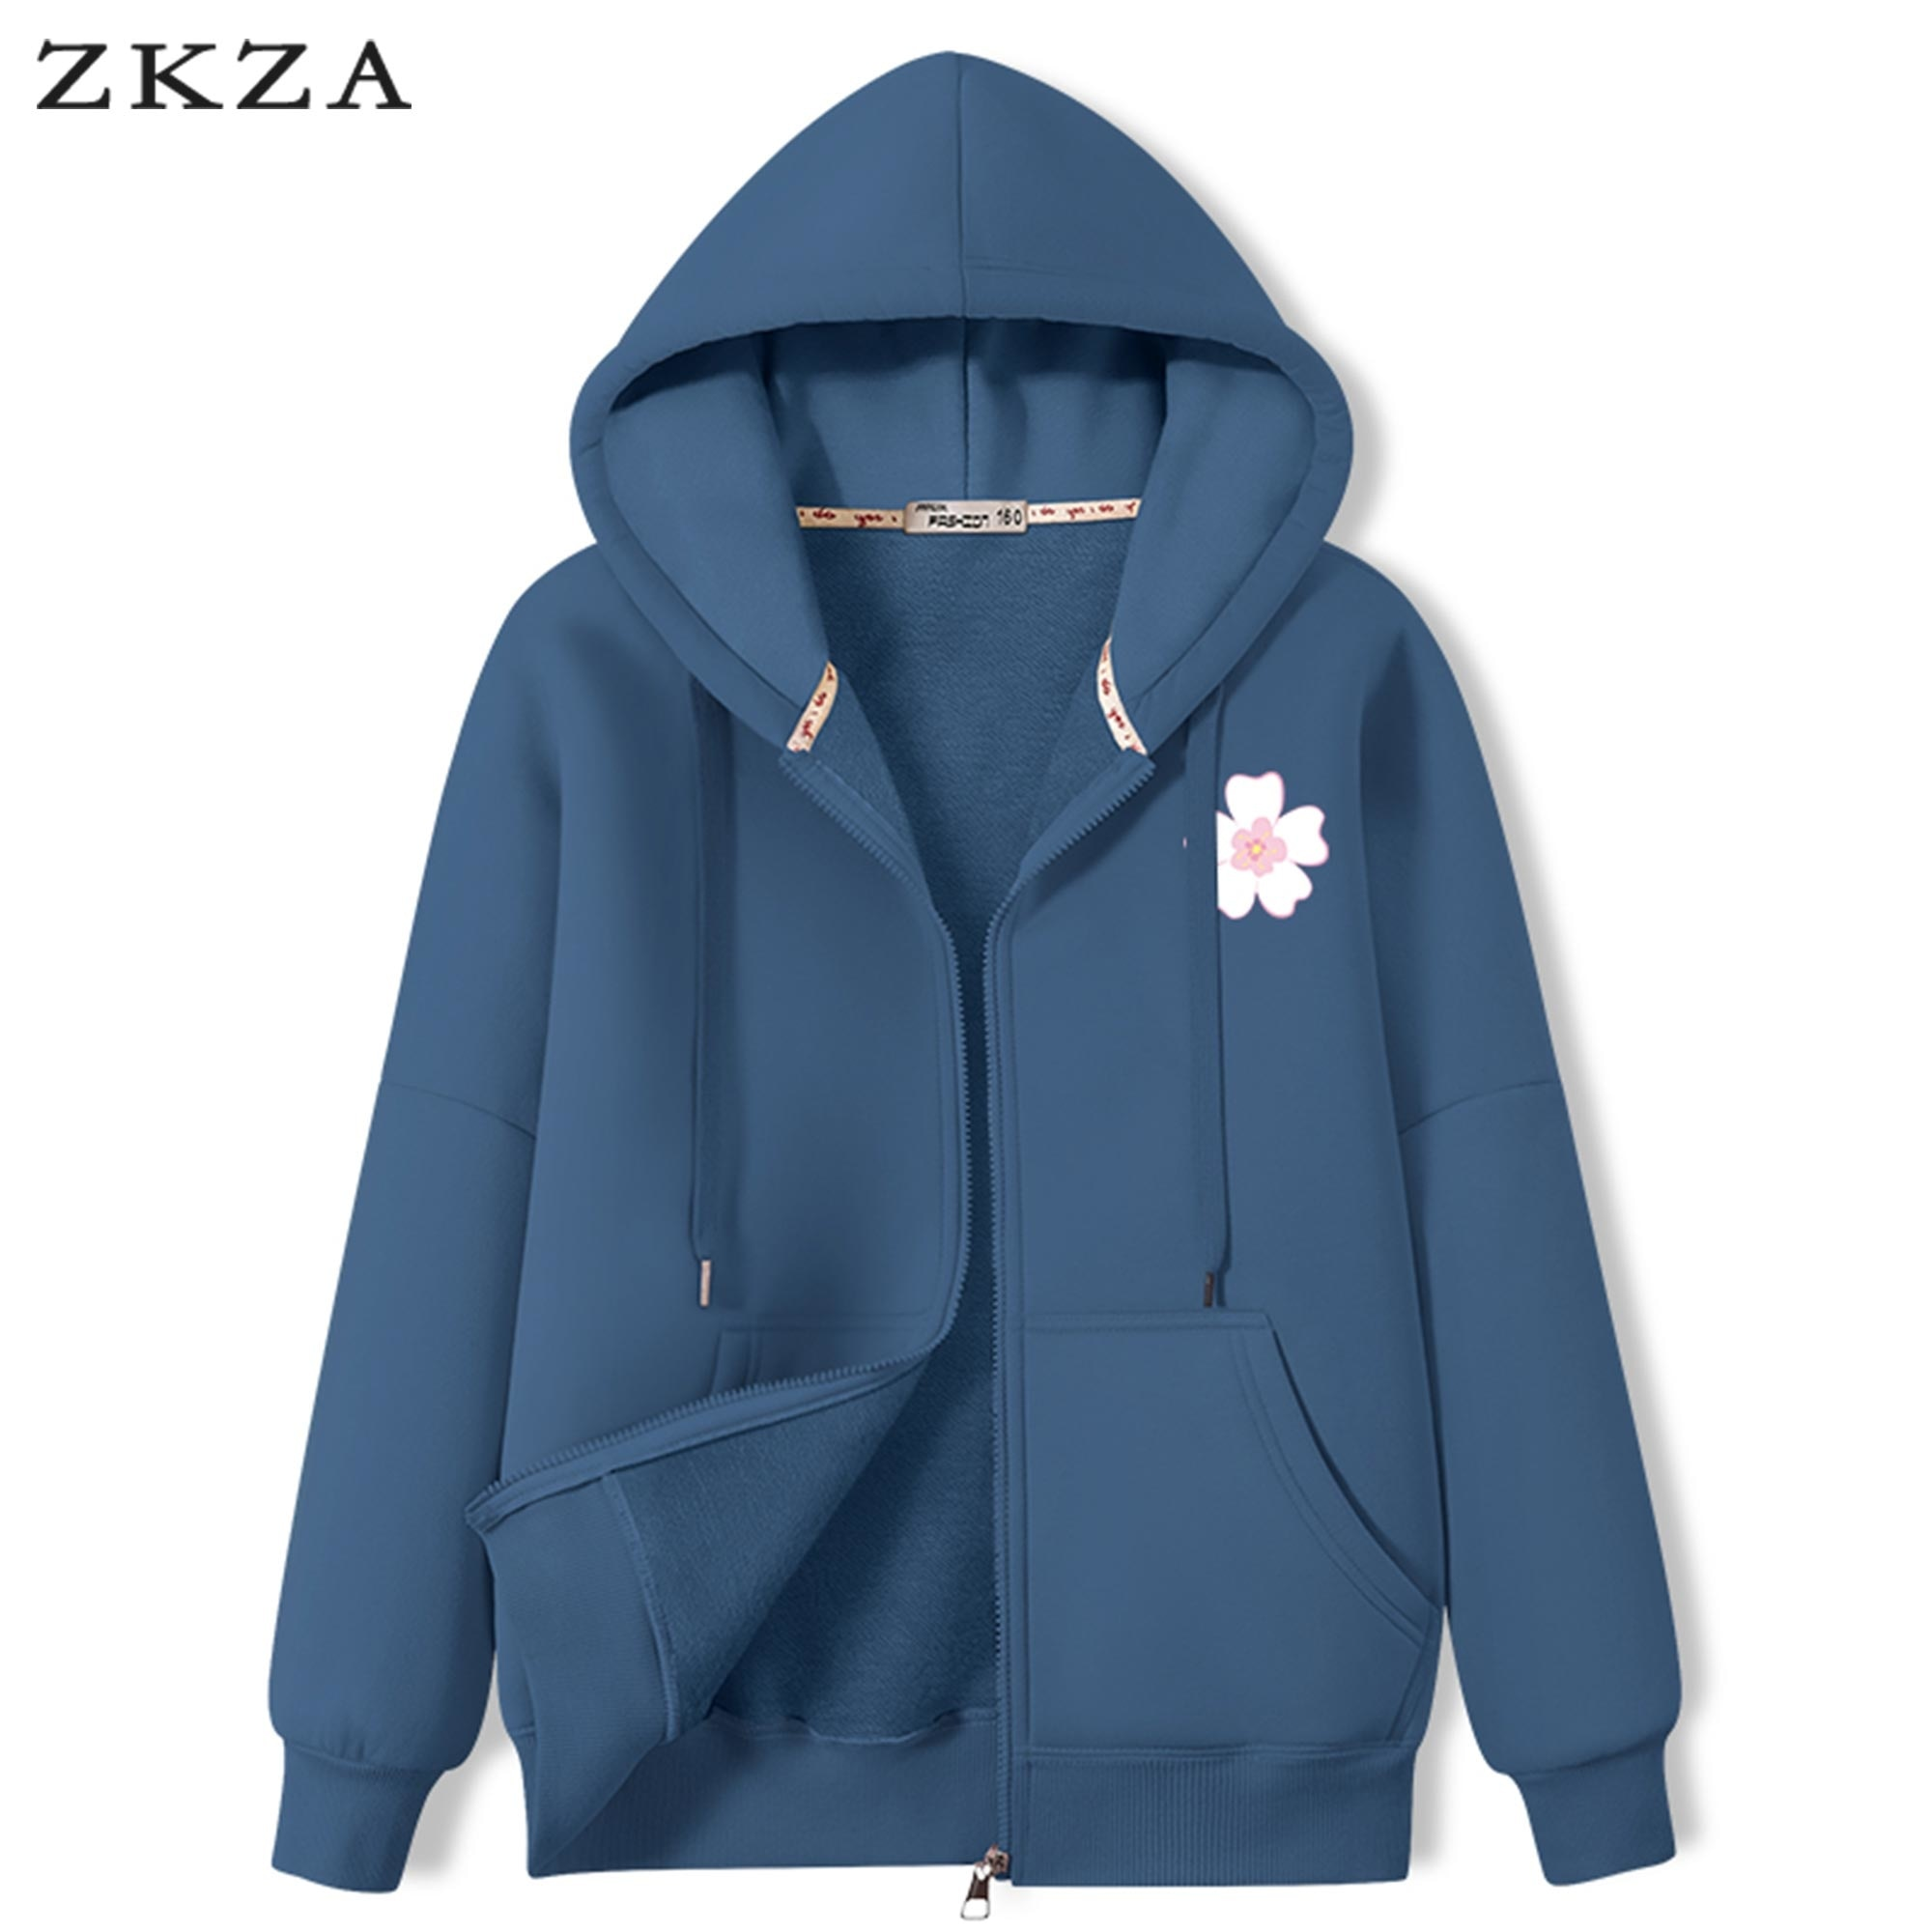 Zip-up Women Korean Style Hoodies 2021 New Autumn Thick  Casual Younger Fashion Girls Top Vintage So